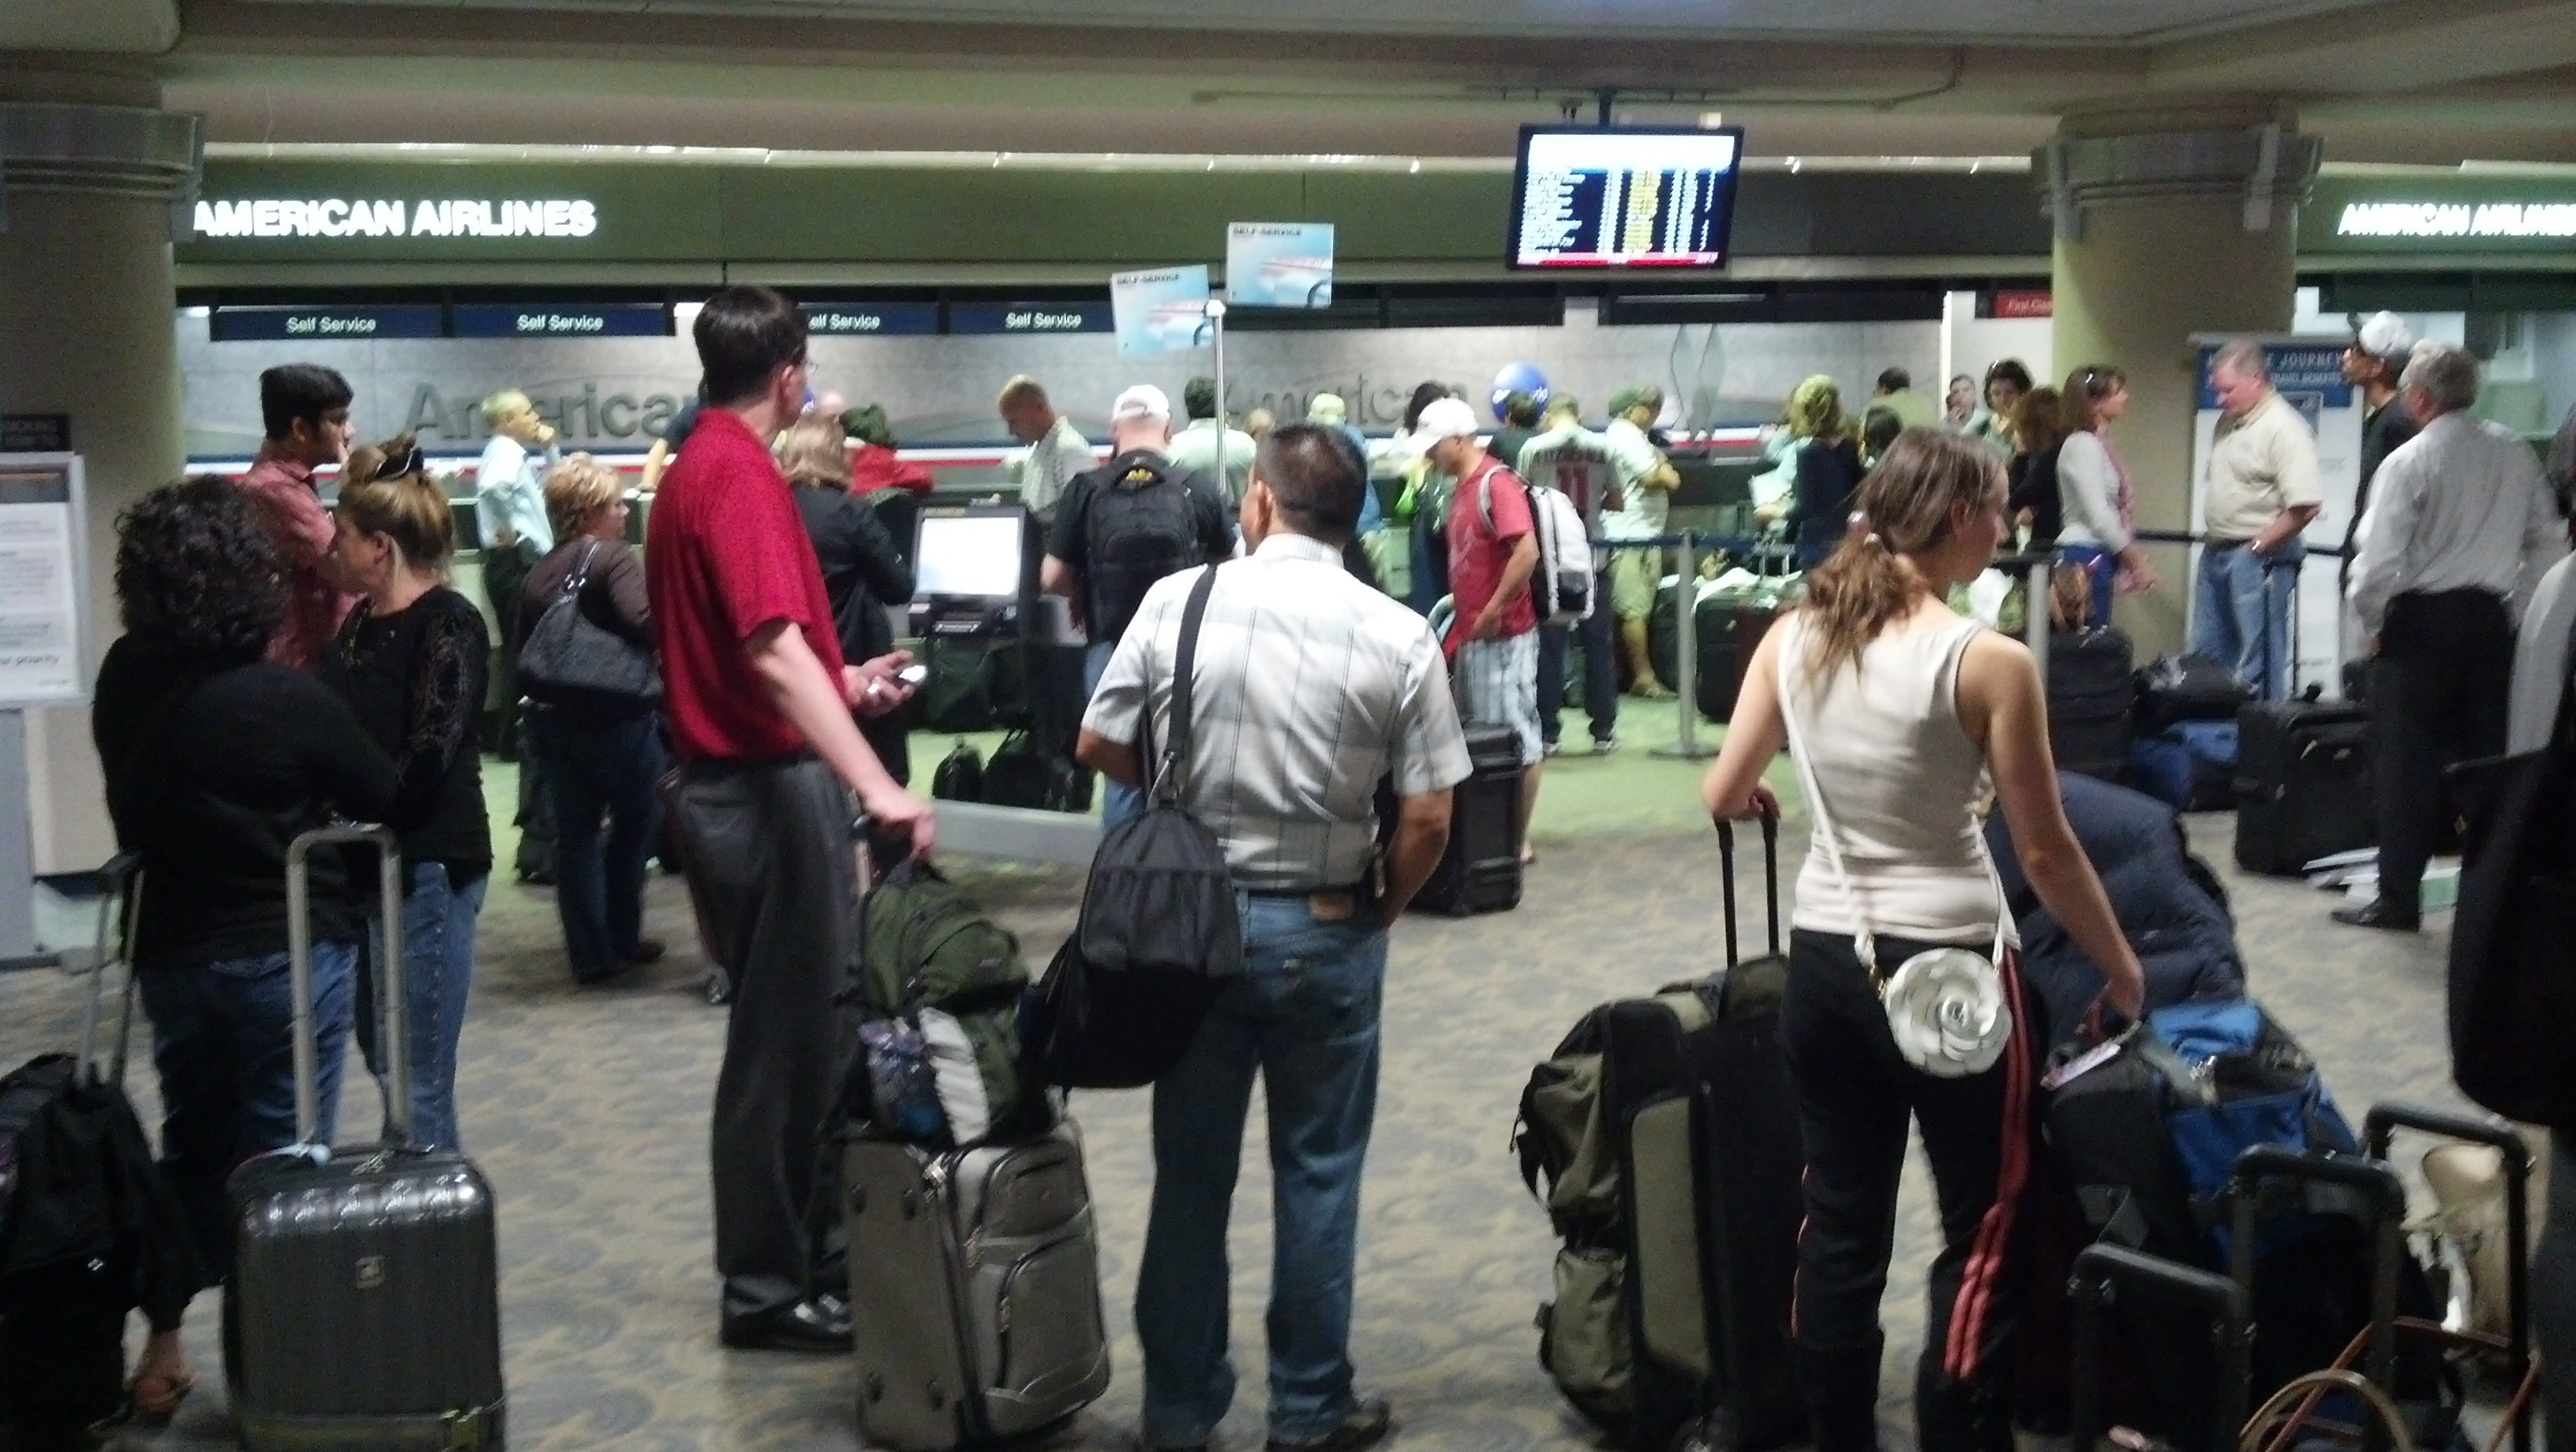 American Airlines grounded flights across the country - including Sky Harbor Airport on Tuesday. (Source: CBS 5 News)